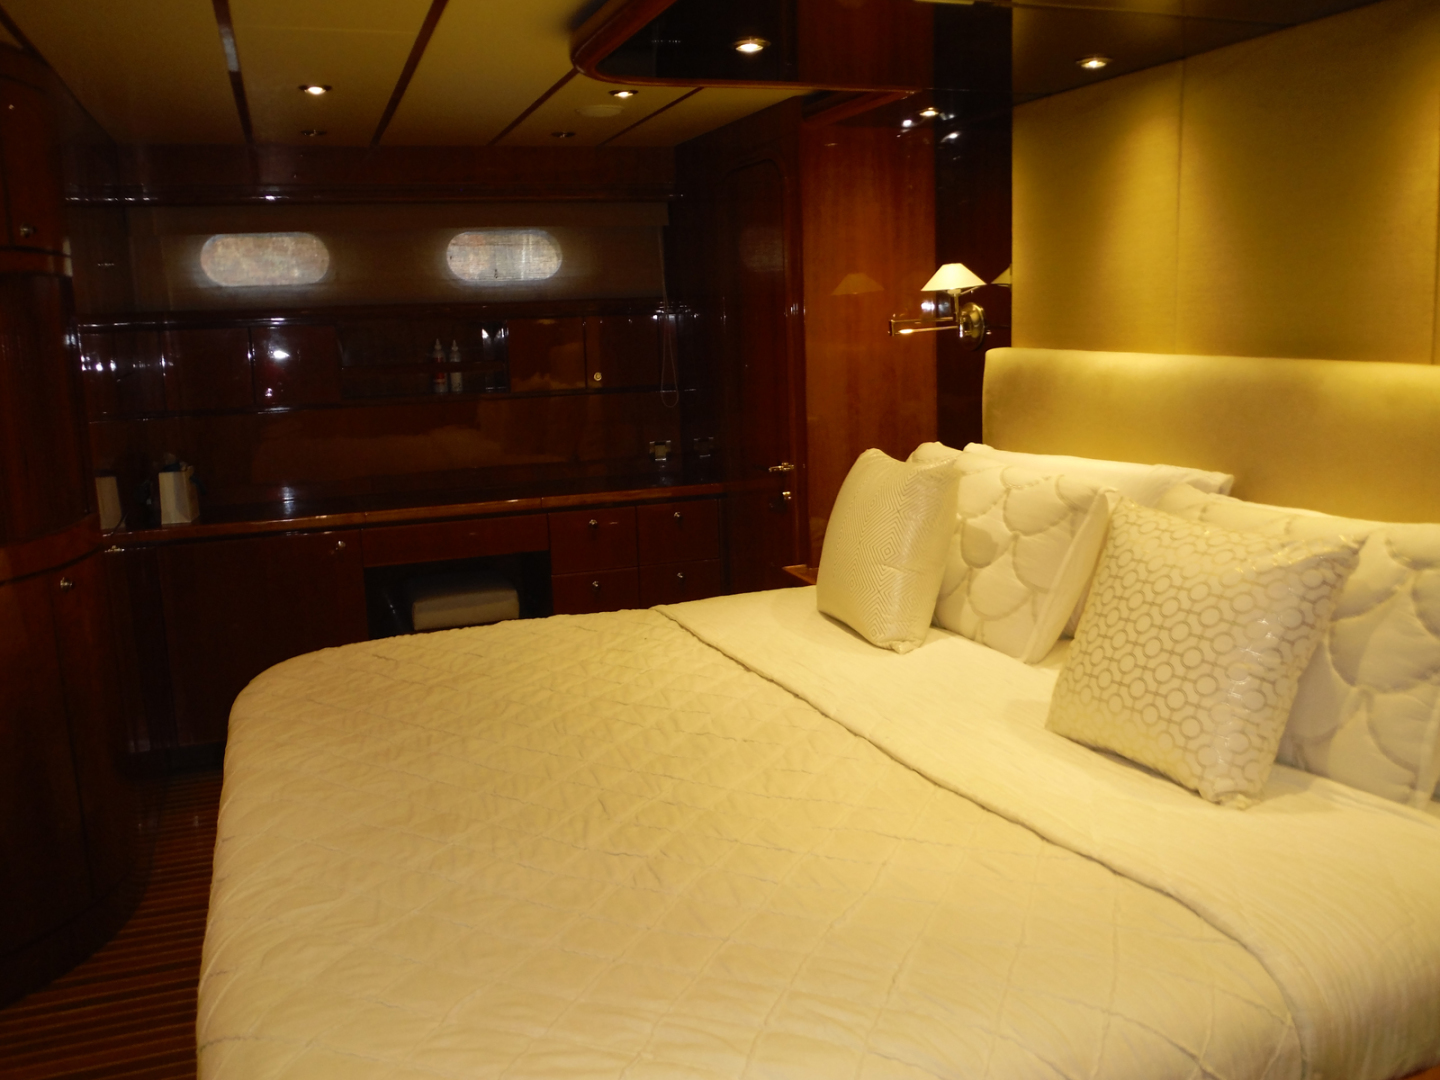 Hargrave-Flybridge Motor Yacht 2001-GRACE Fort Lauderdale-Florida-United States-Master Cabin Looking to Starboard-1091950 | Thumbnail